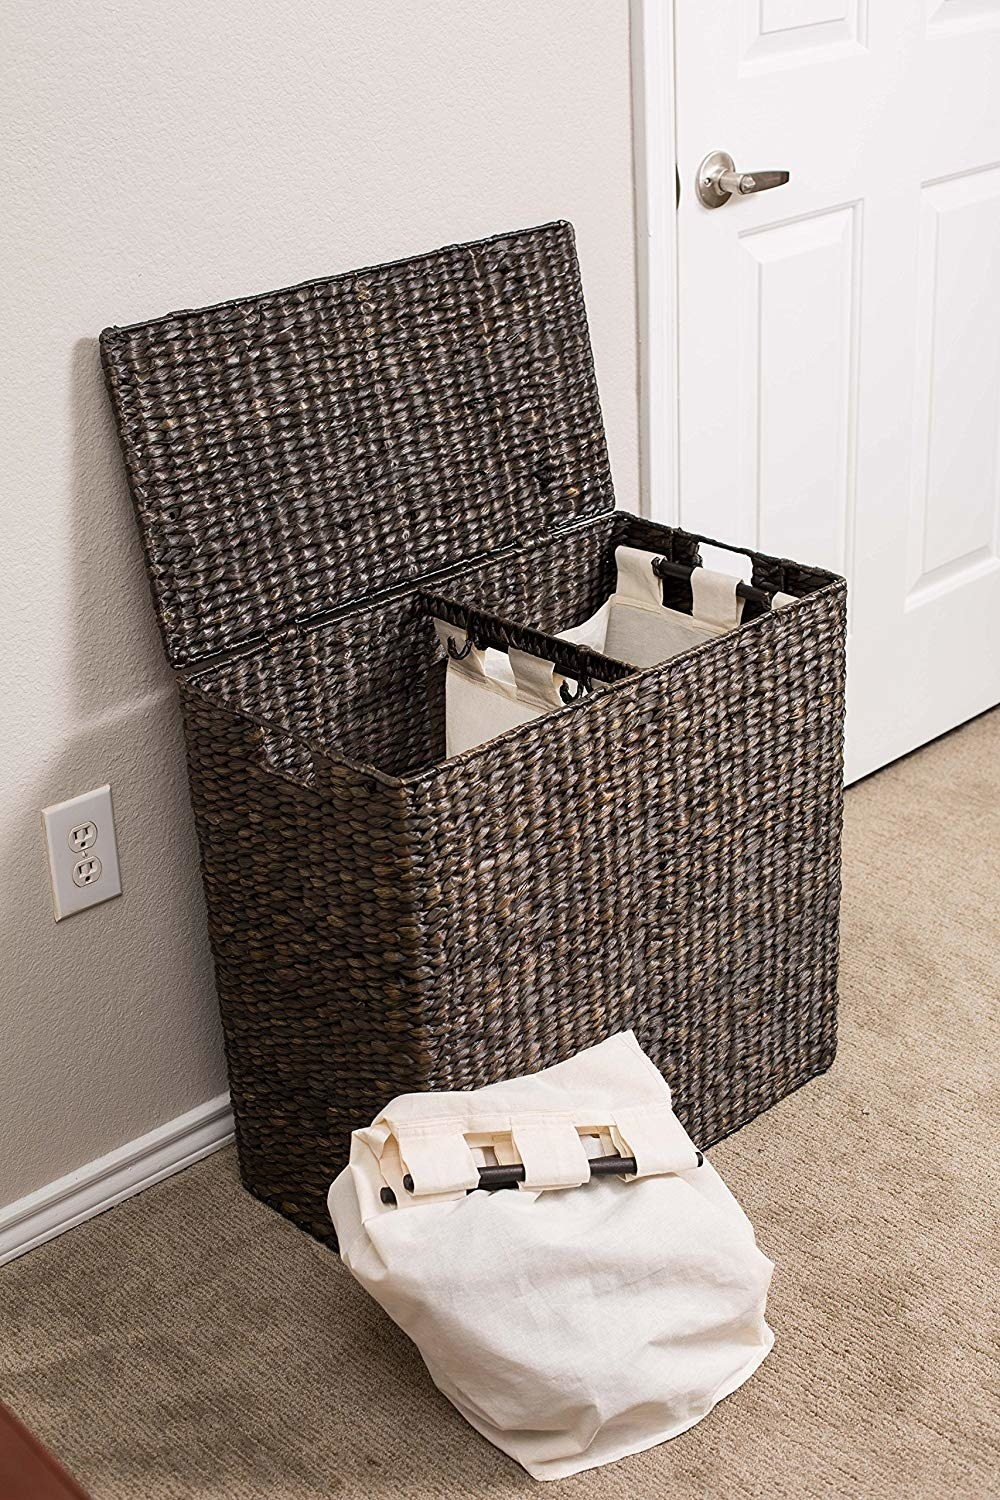 Or A ~fancier~ Double Hamper To Do The Same Job With A Higher End Look.